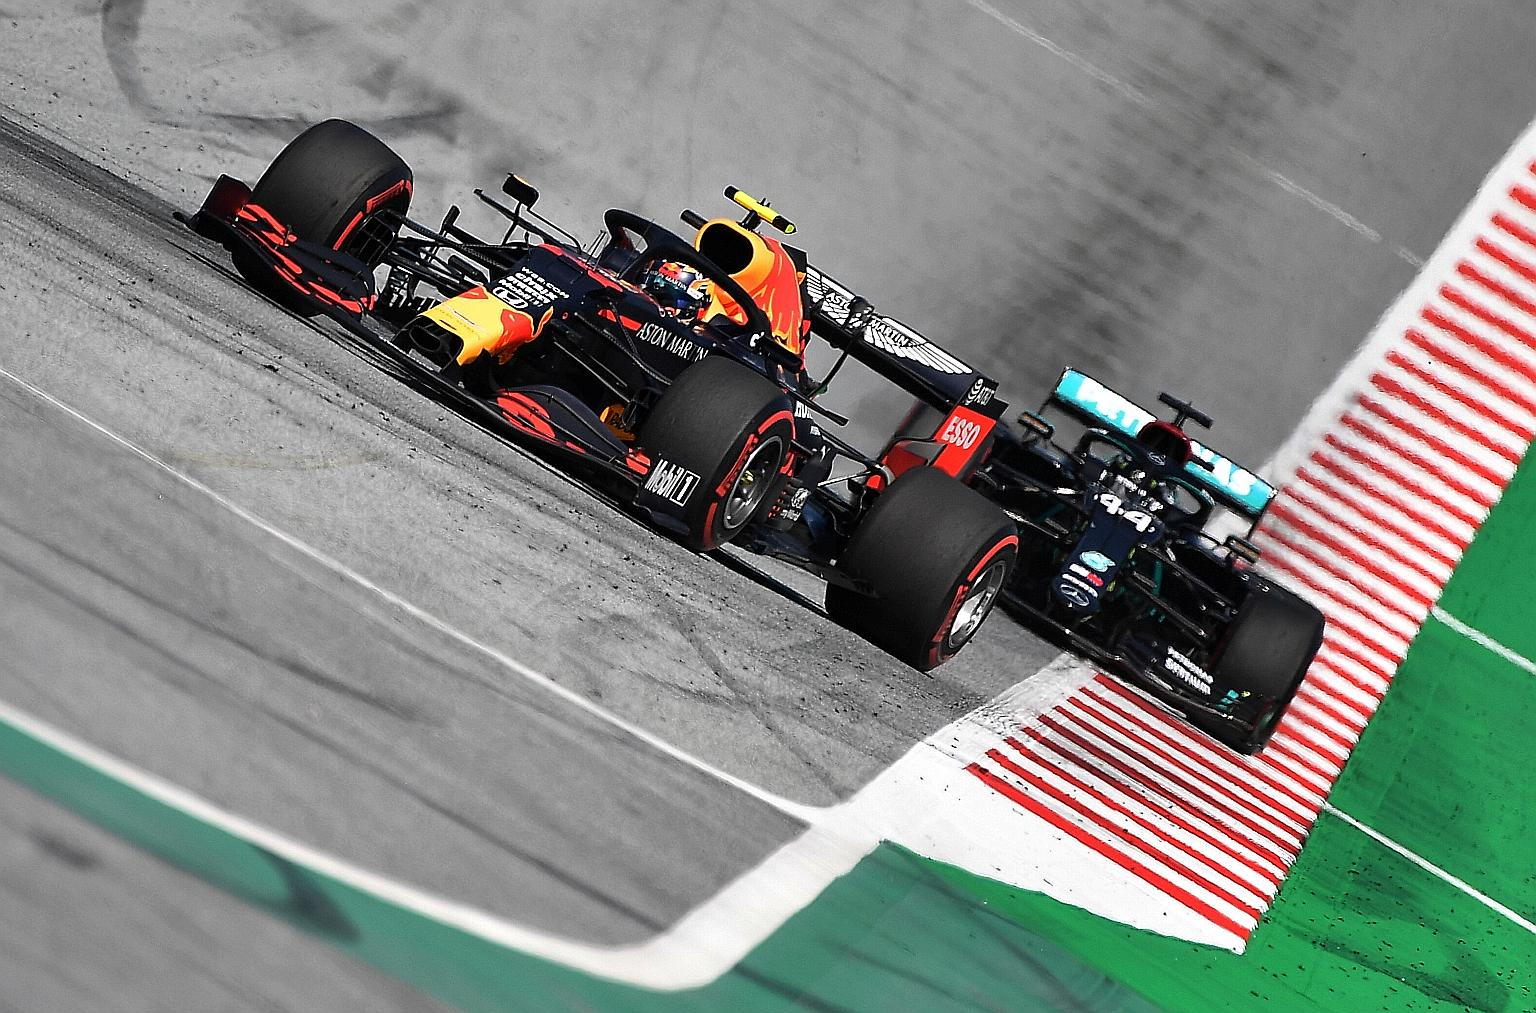 Mercedes may be guilty too in copying affair, says Red Bull's Horner